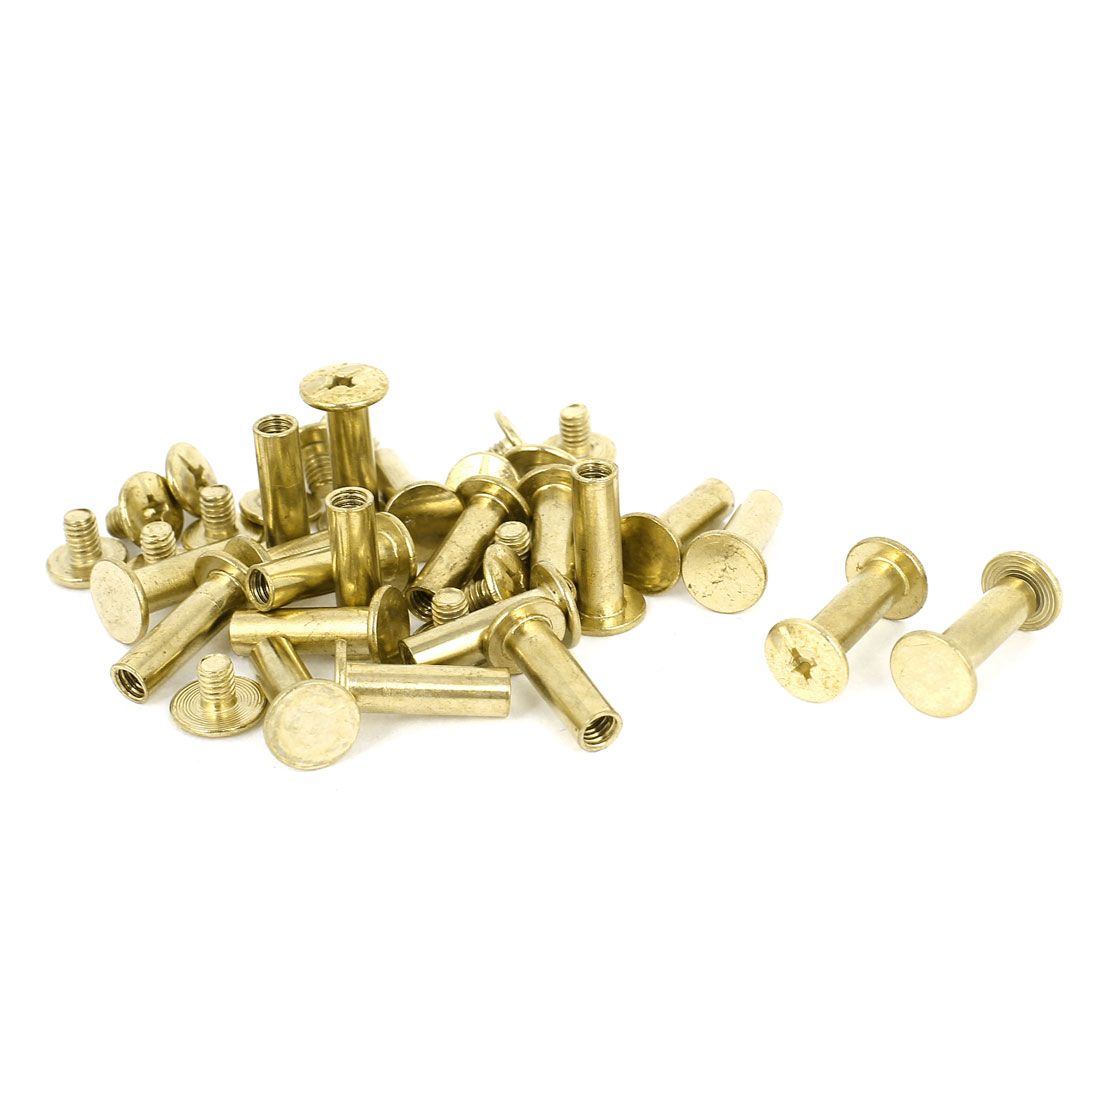 Brass Plated 5x15mm Binding Chicago Screw Post 20pcs for Leather Scrapbook